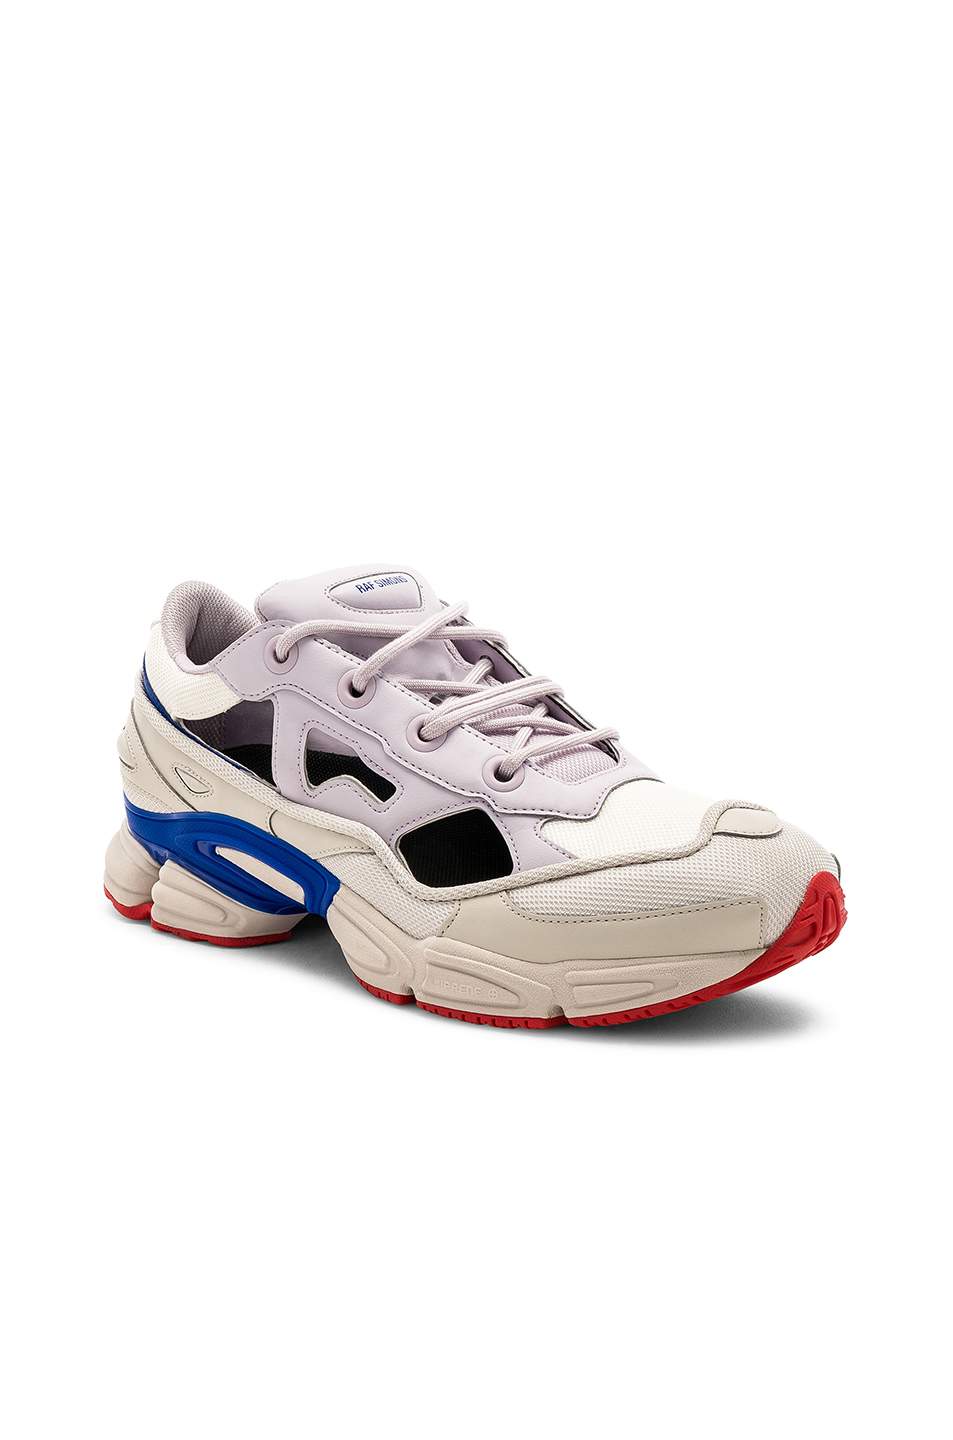 promo code 91dca c4471 Independence Day Replicant Ozweego, adidas by Raf Simons